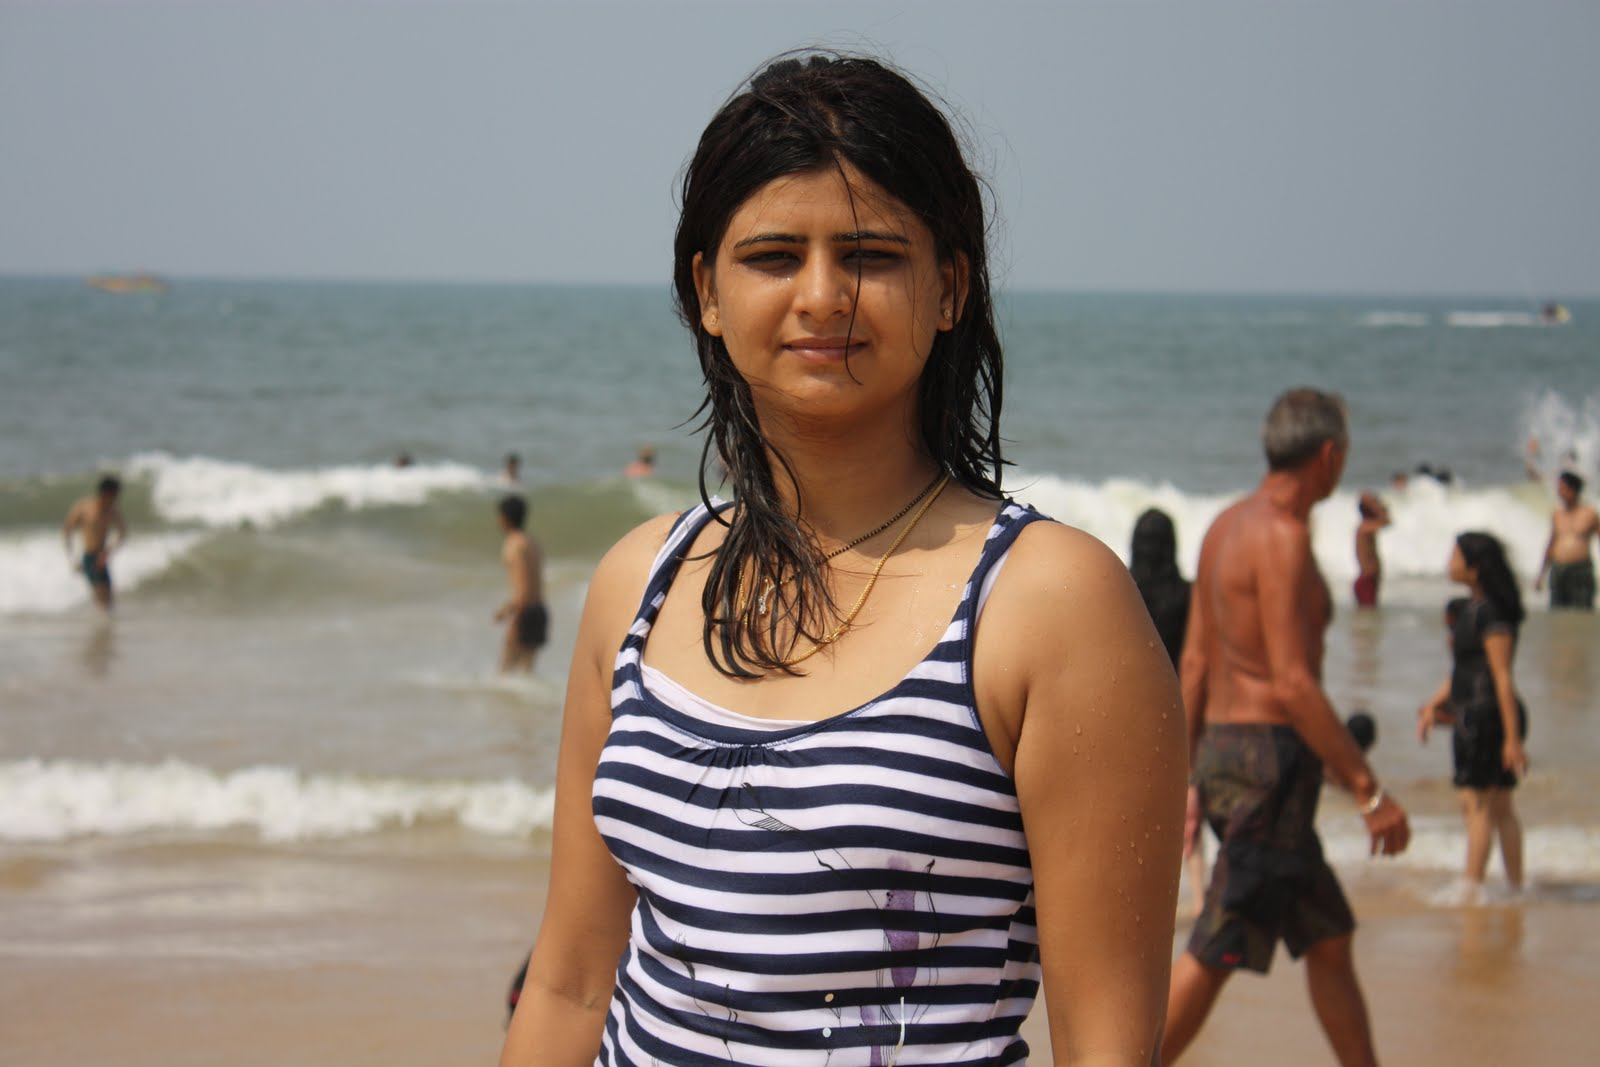 Hot Indian Girl Pictures At Goa Beach-5004